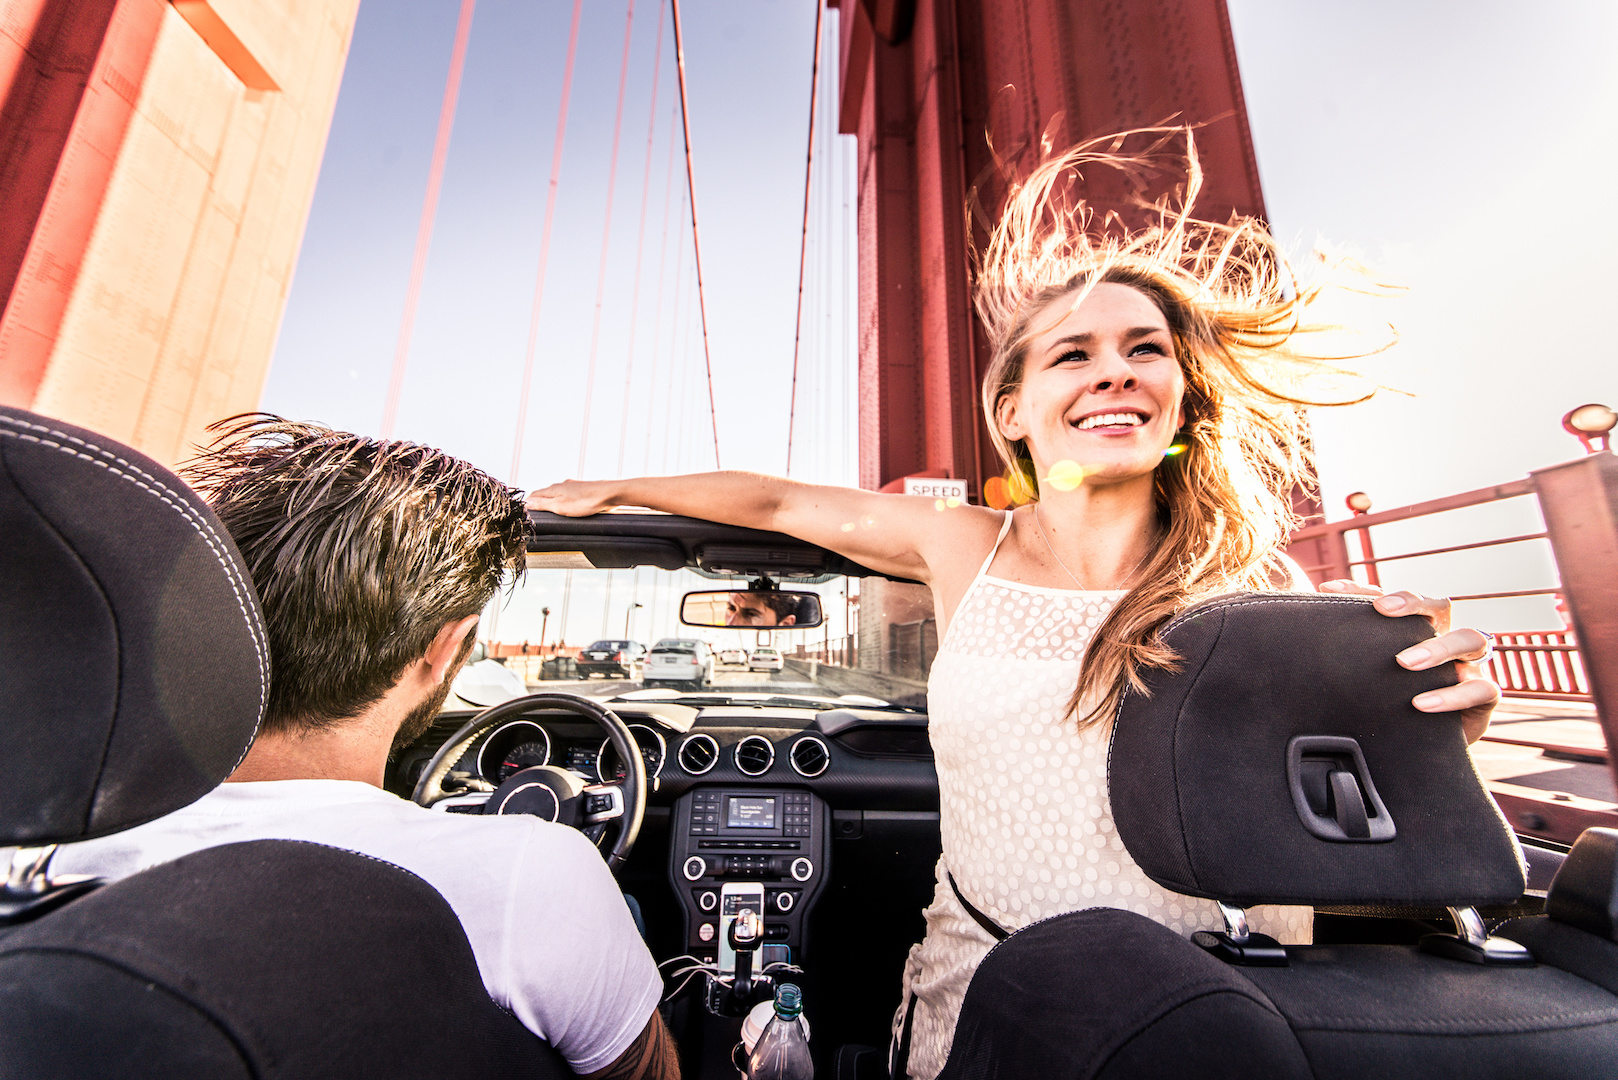 Couple enjoying a ride on the Golden Gate bridge in a red convertible.